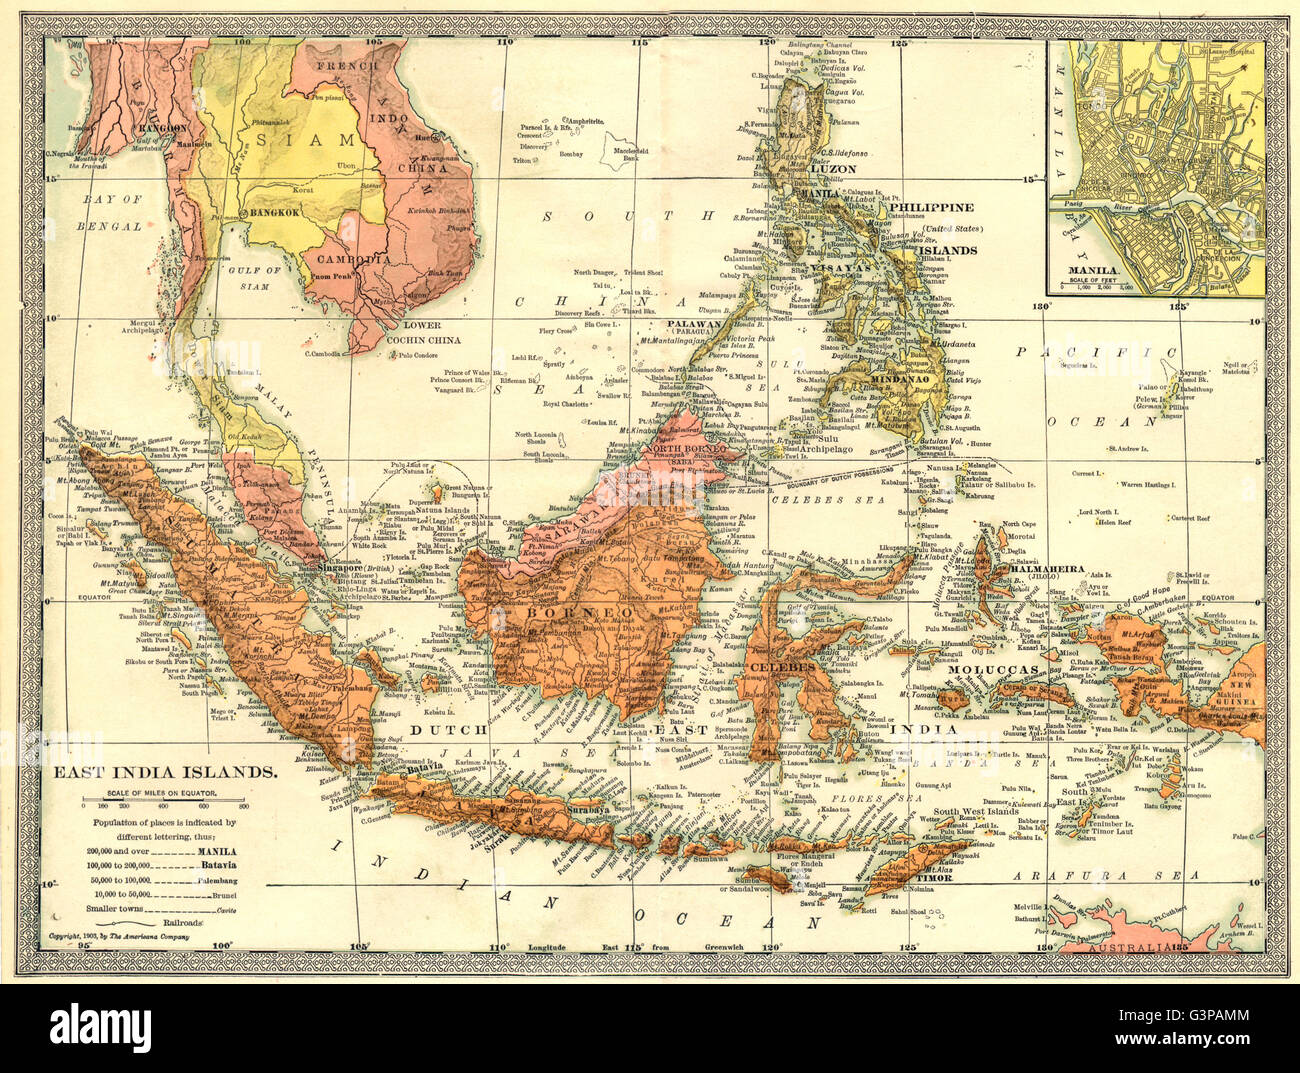 East indies east india islands indonesia philippines manila stock east india islands indonesia philippines manila environs 1907 map gumiabroncs Images